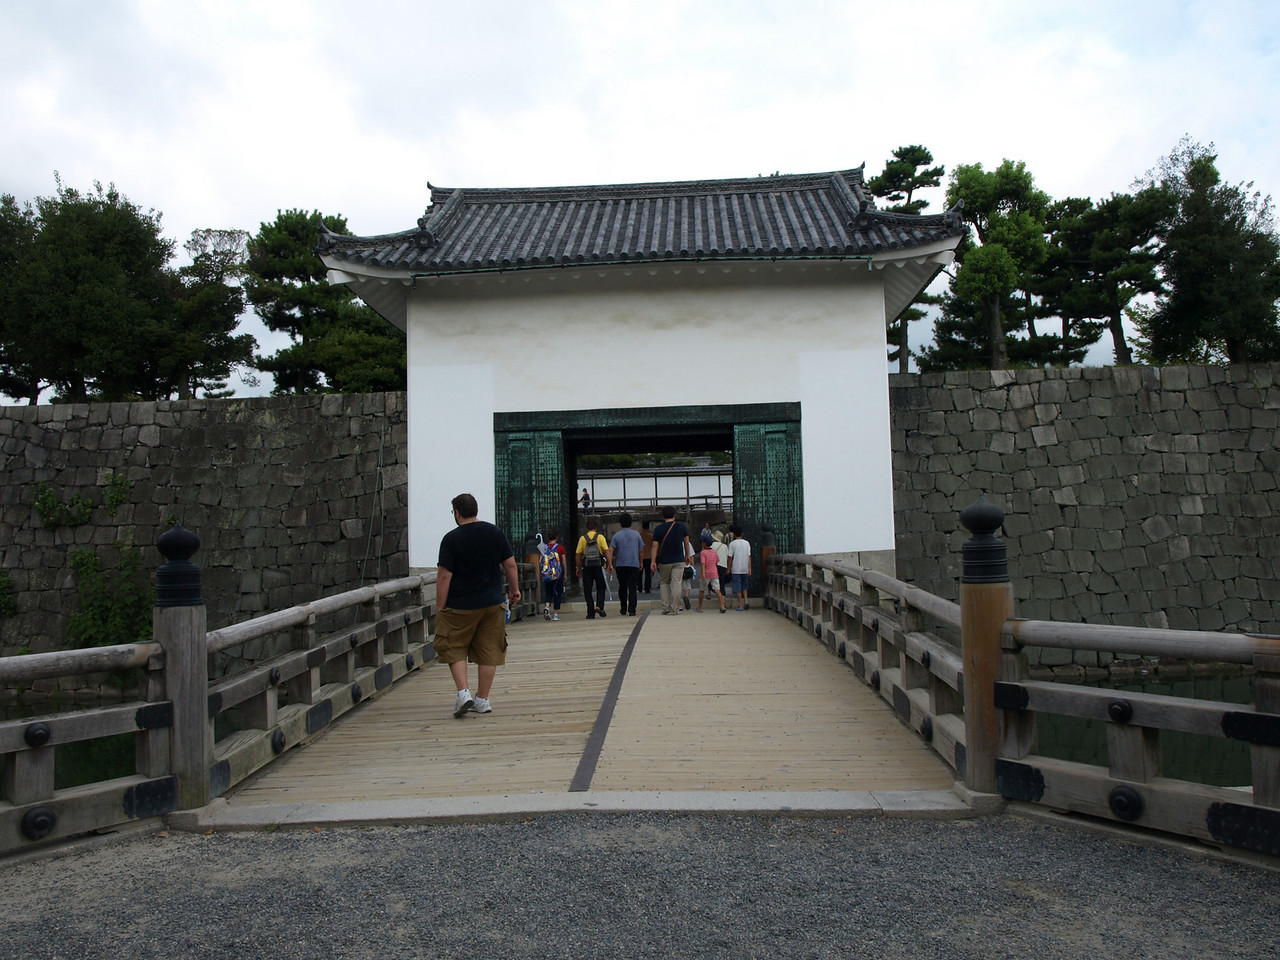 Walking up to the East Bridge crossing the inner moat leading through the Honmaru Turret Gate